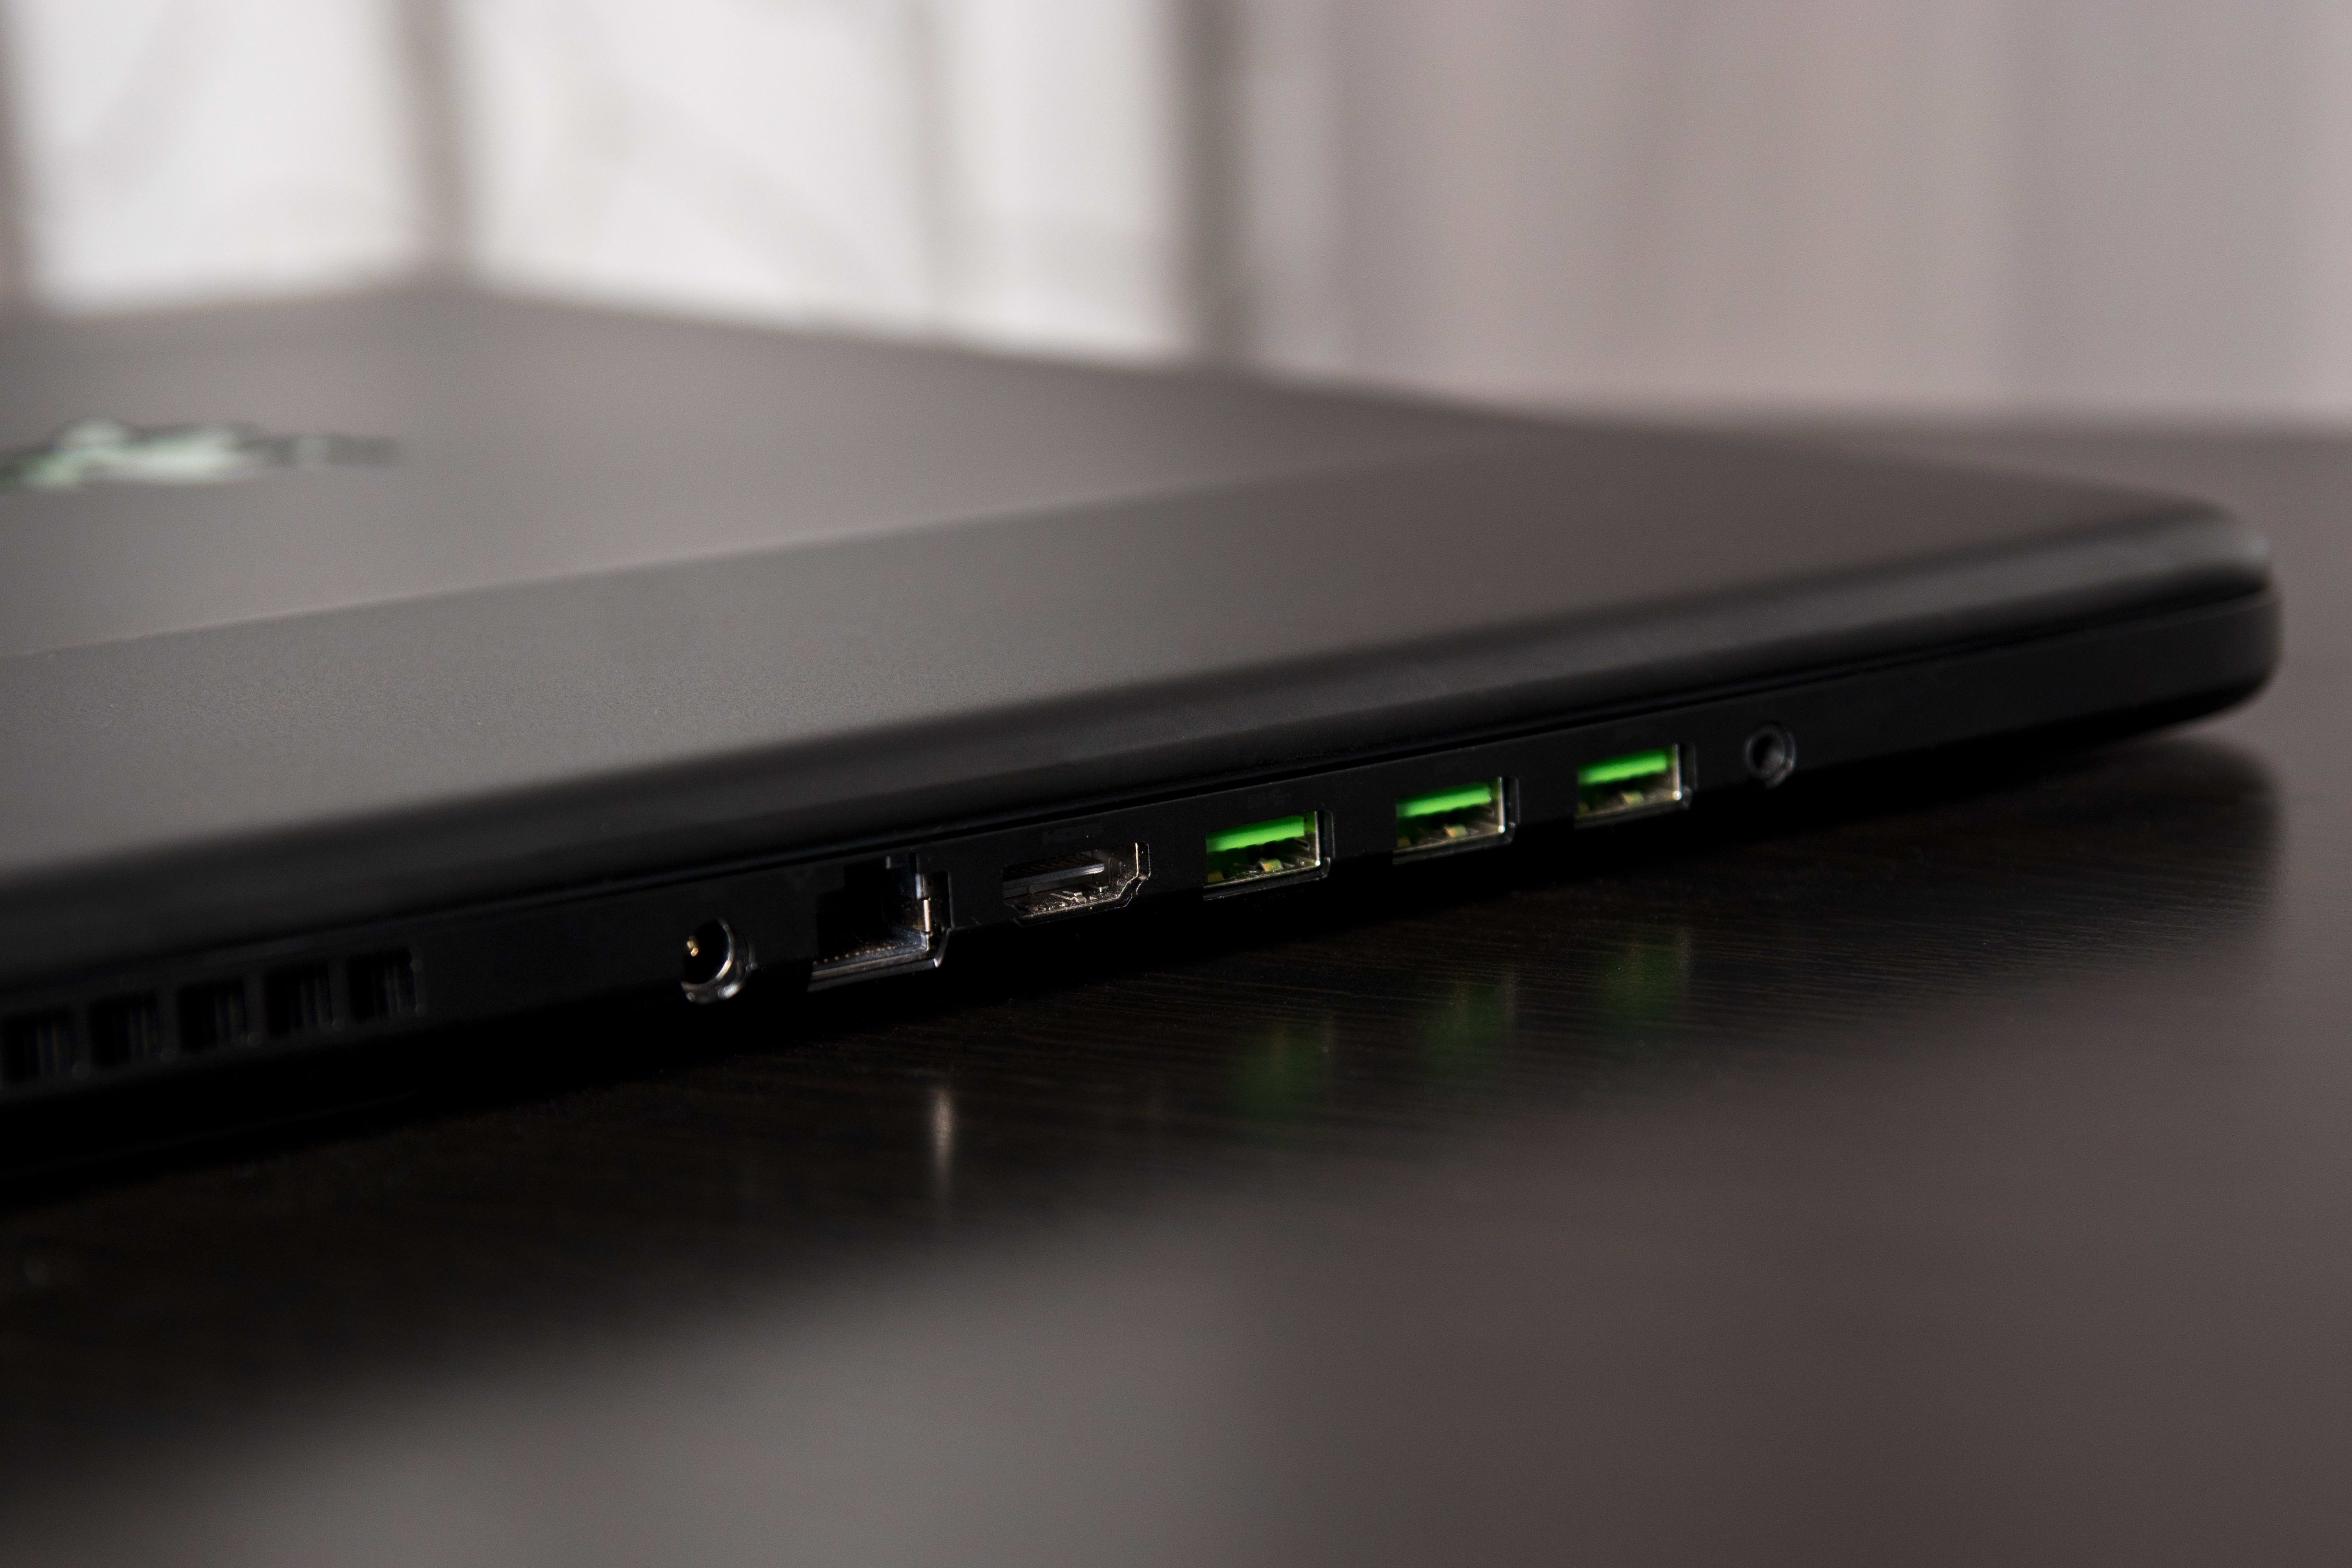 A photo of the Razer Blade Pro's ports.